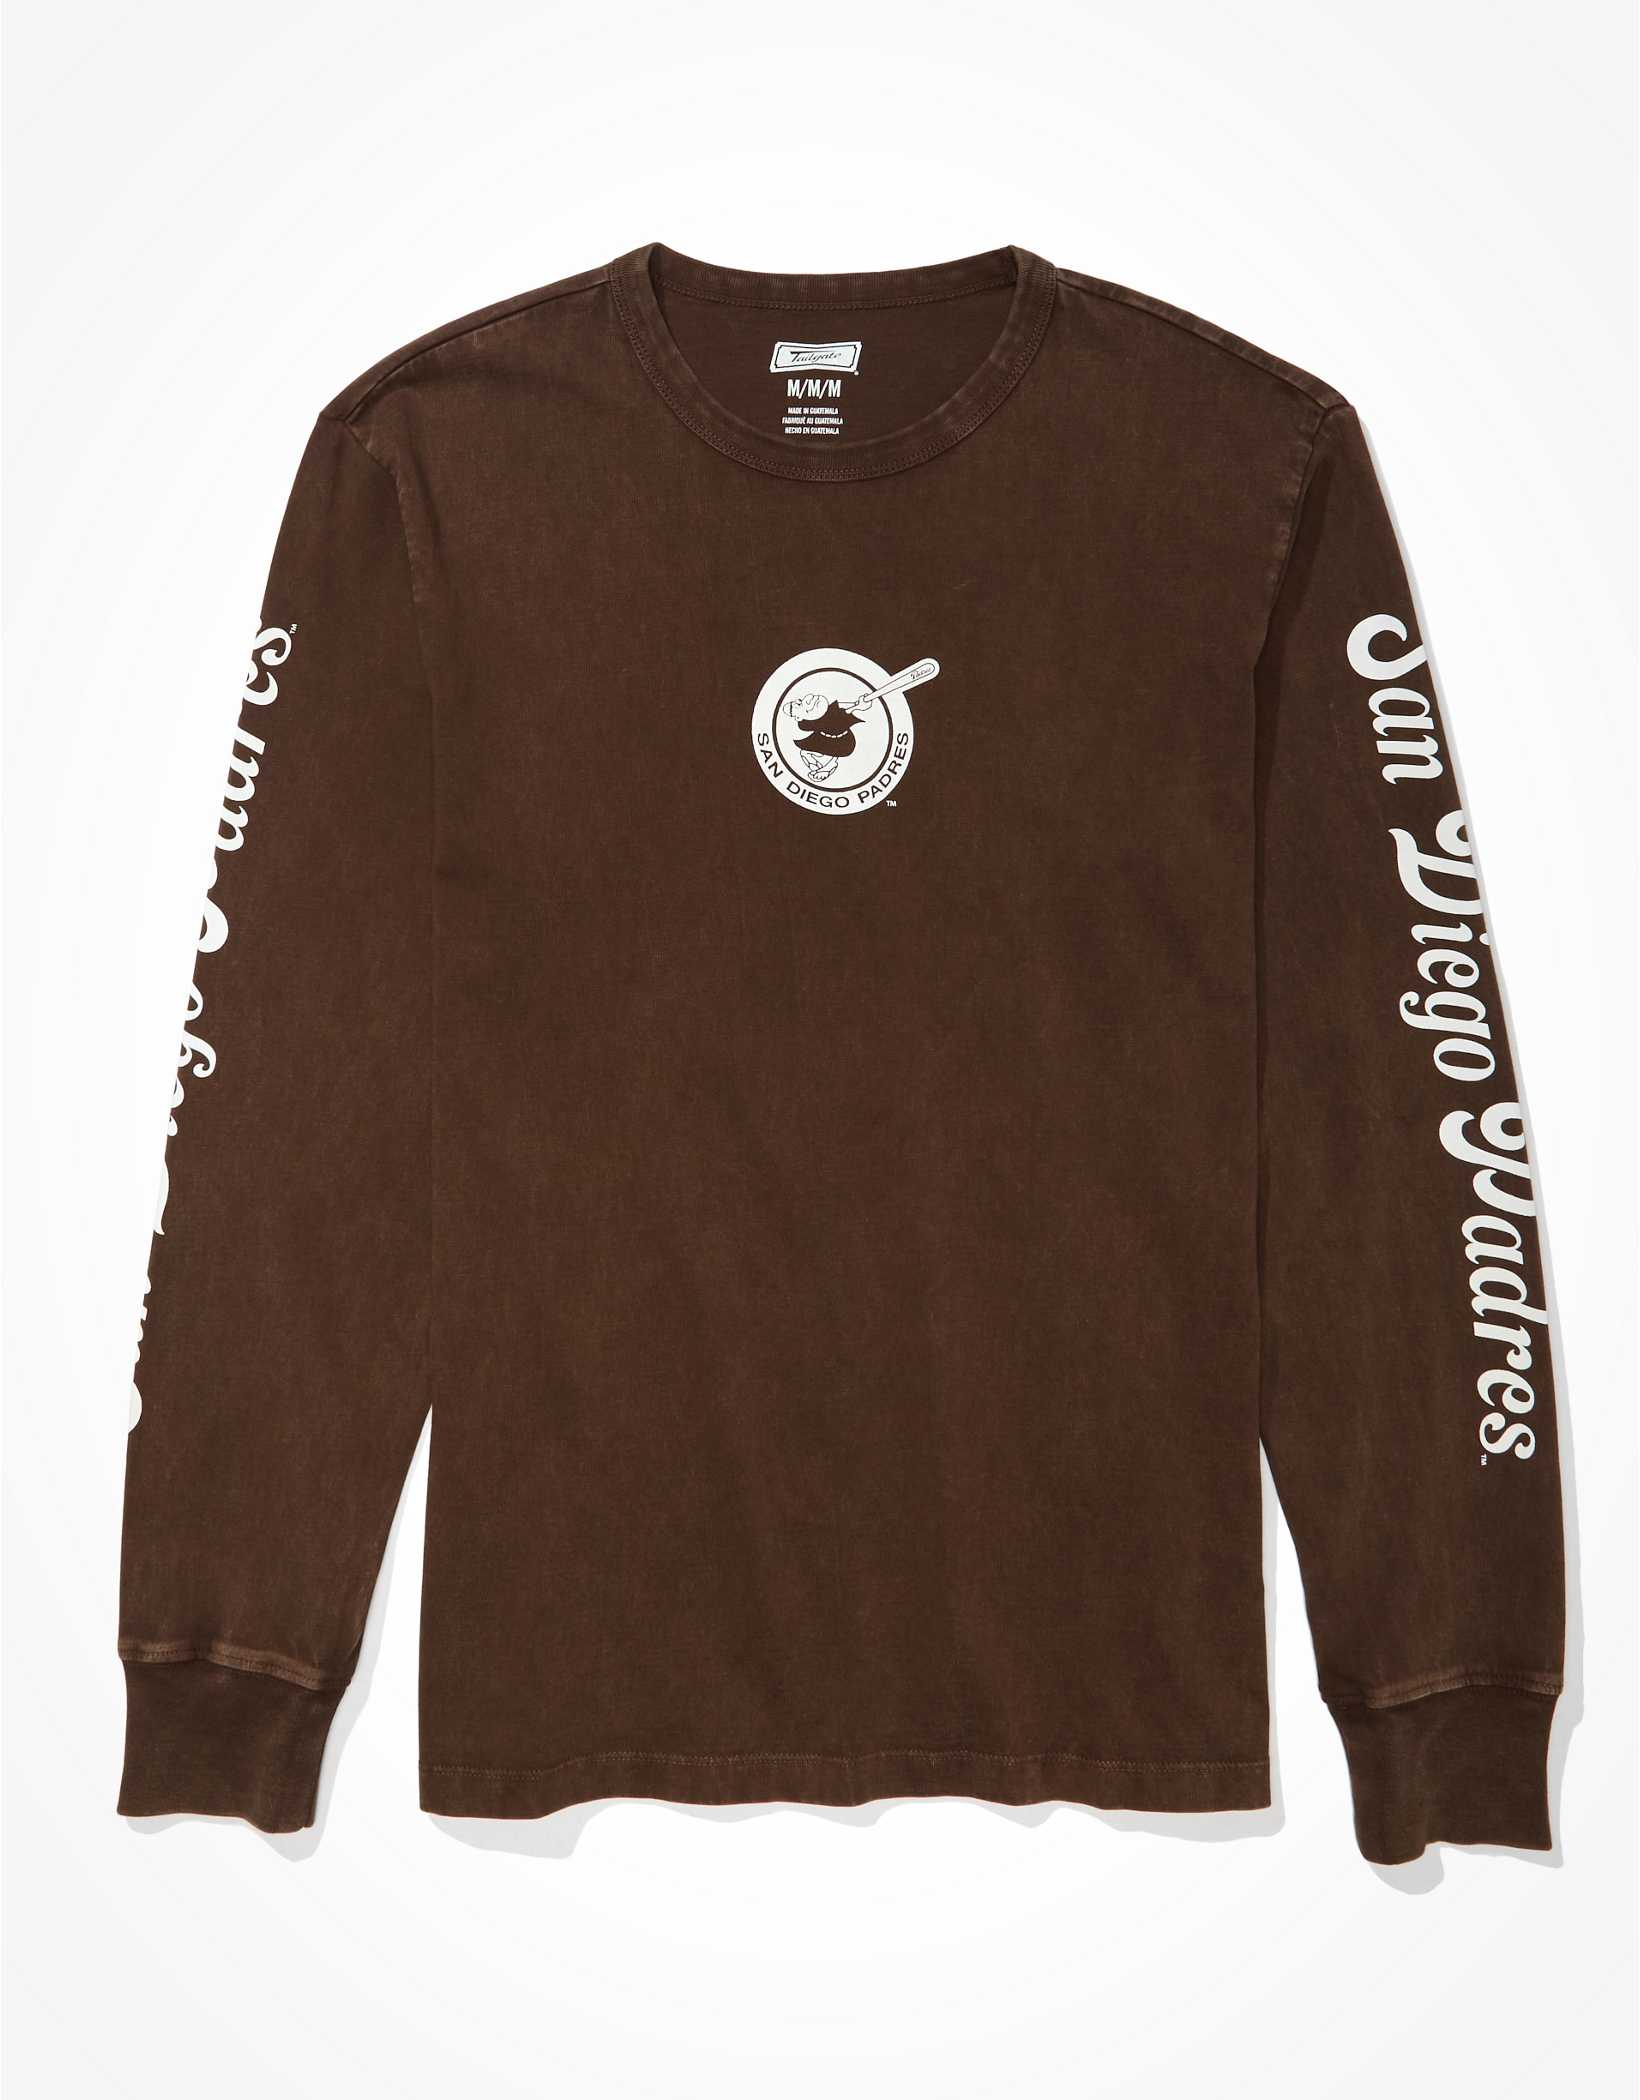 Tailgate Men's San Diego Padres Long-Sleeve Graphic T-Shirt